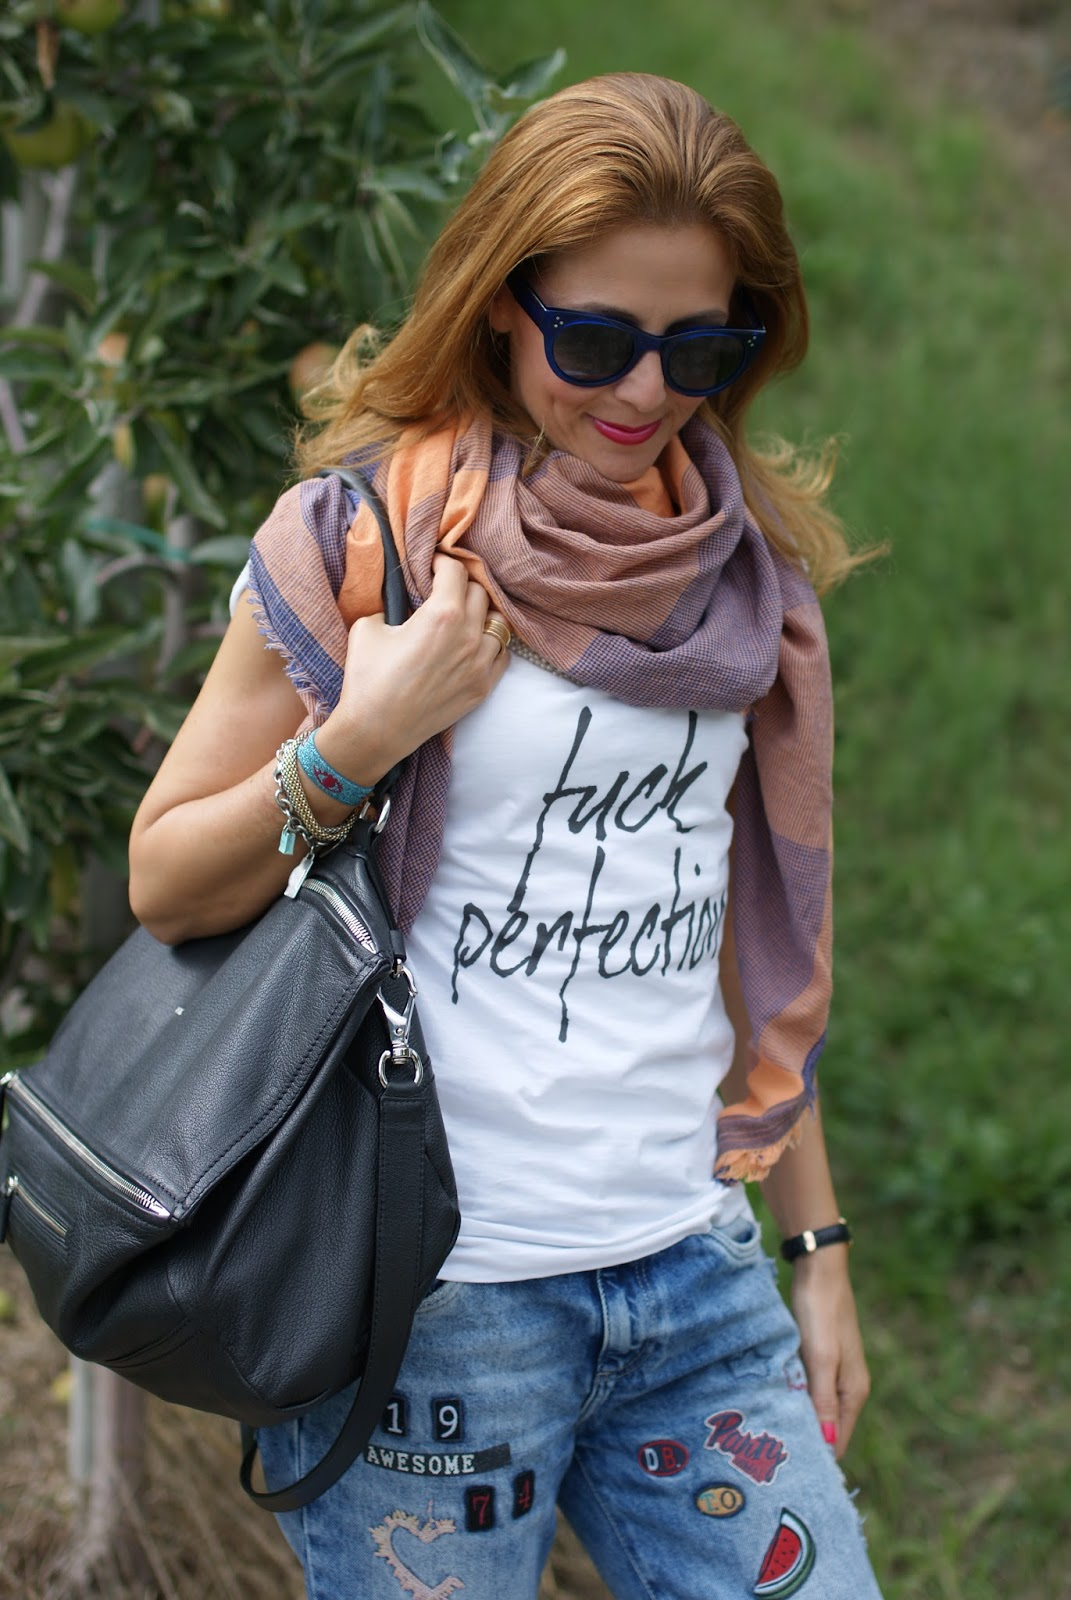 Fuck perfection, a rebel fashion outfit with my Pokemaoke t-shirt, hype sunglasses, Givenchy Pandora bag and patchy jeans on Fashion and Cookies fashion blog, fashion blogger style